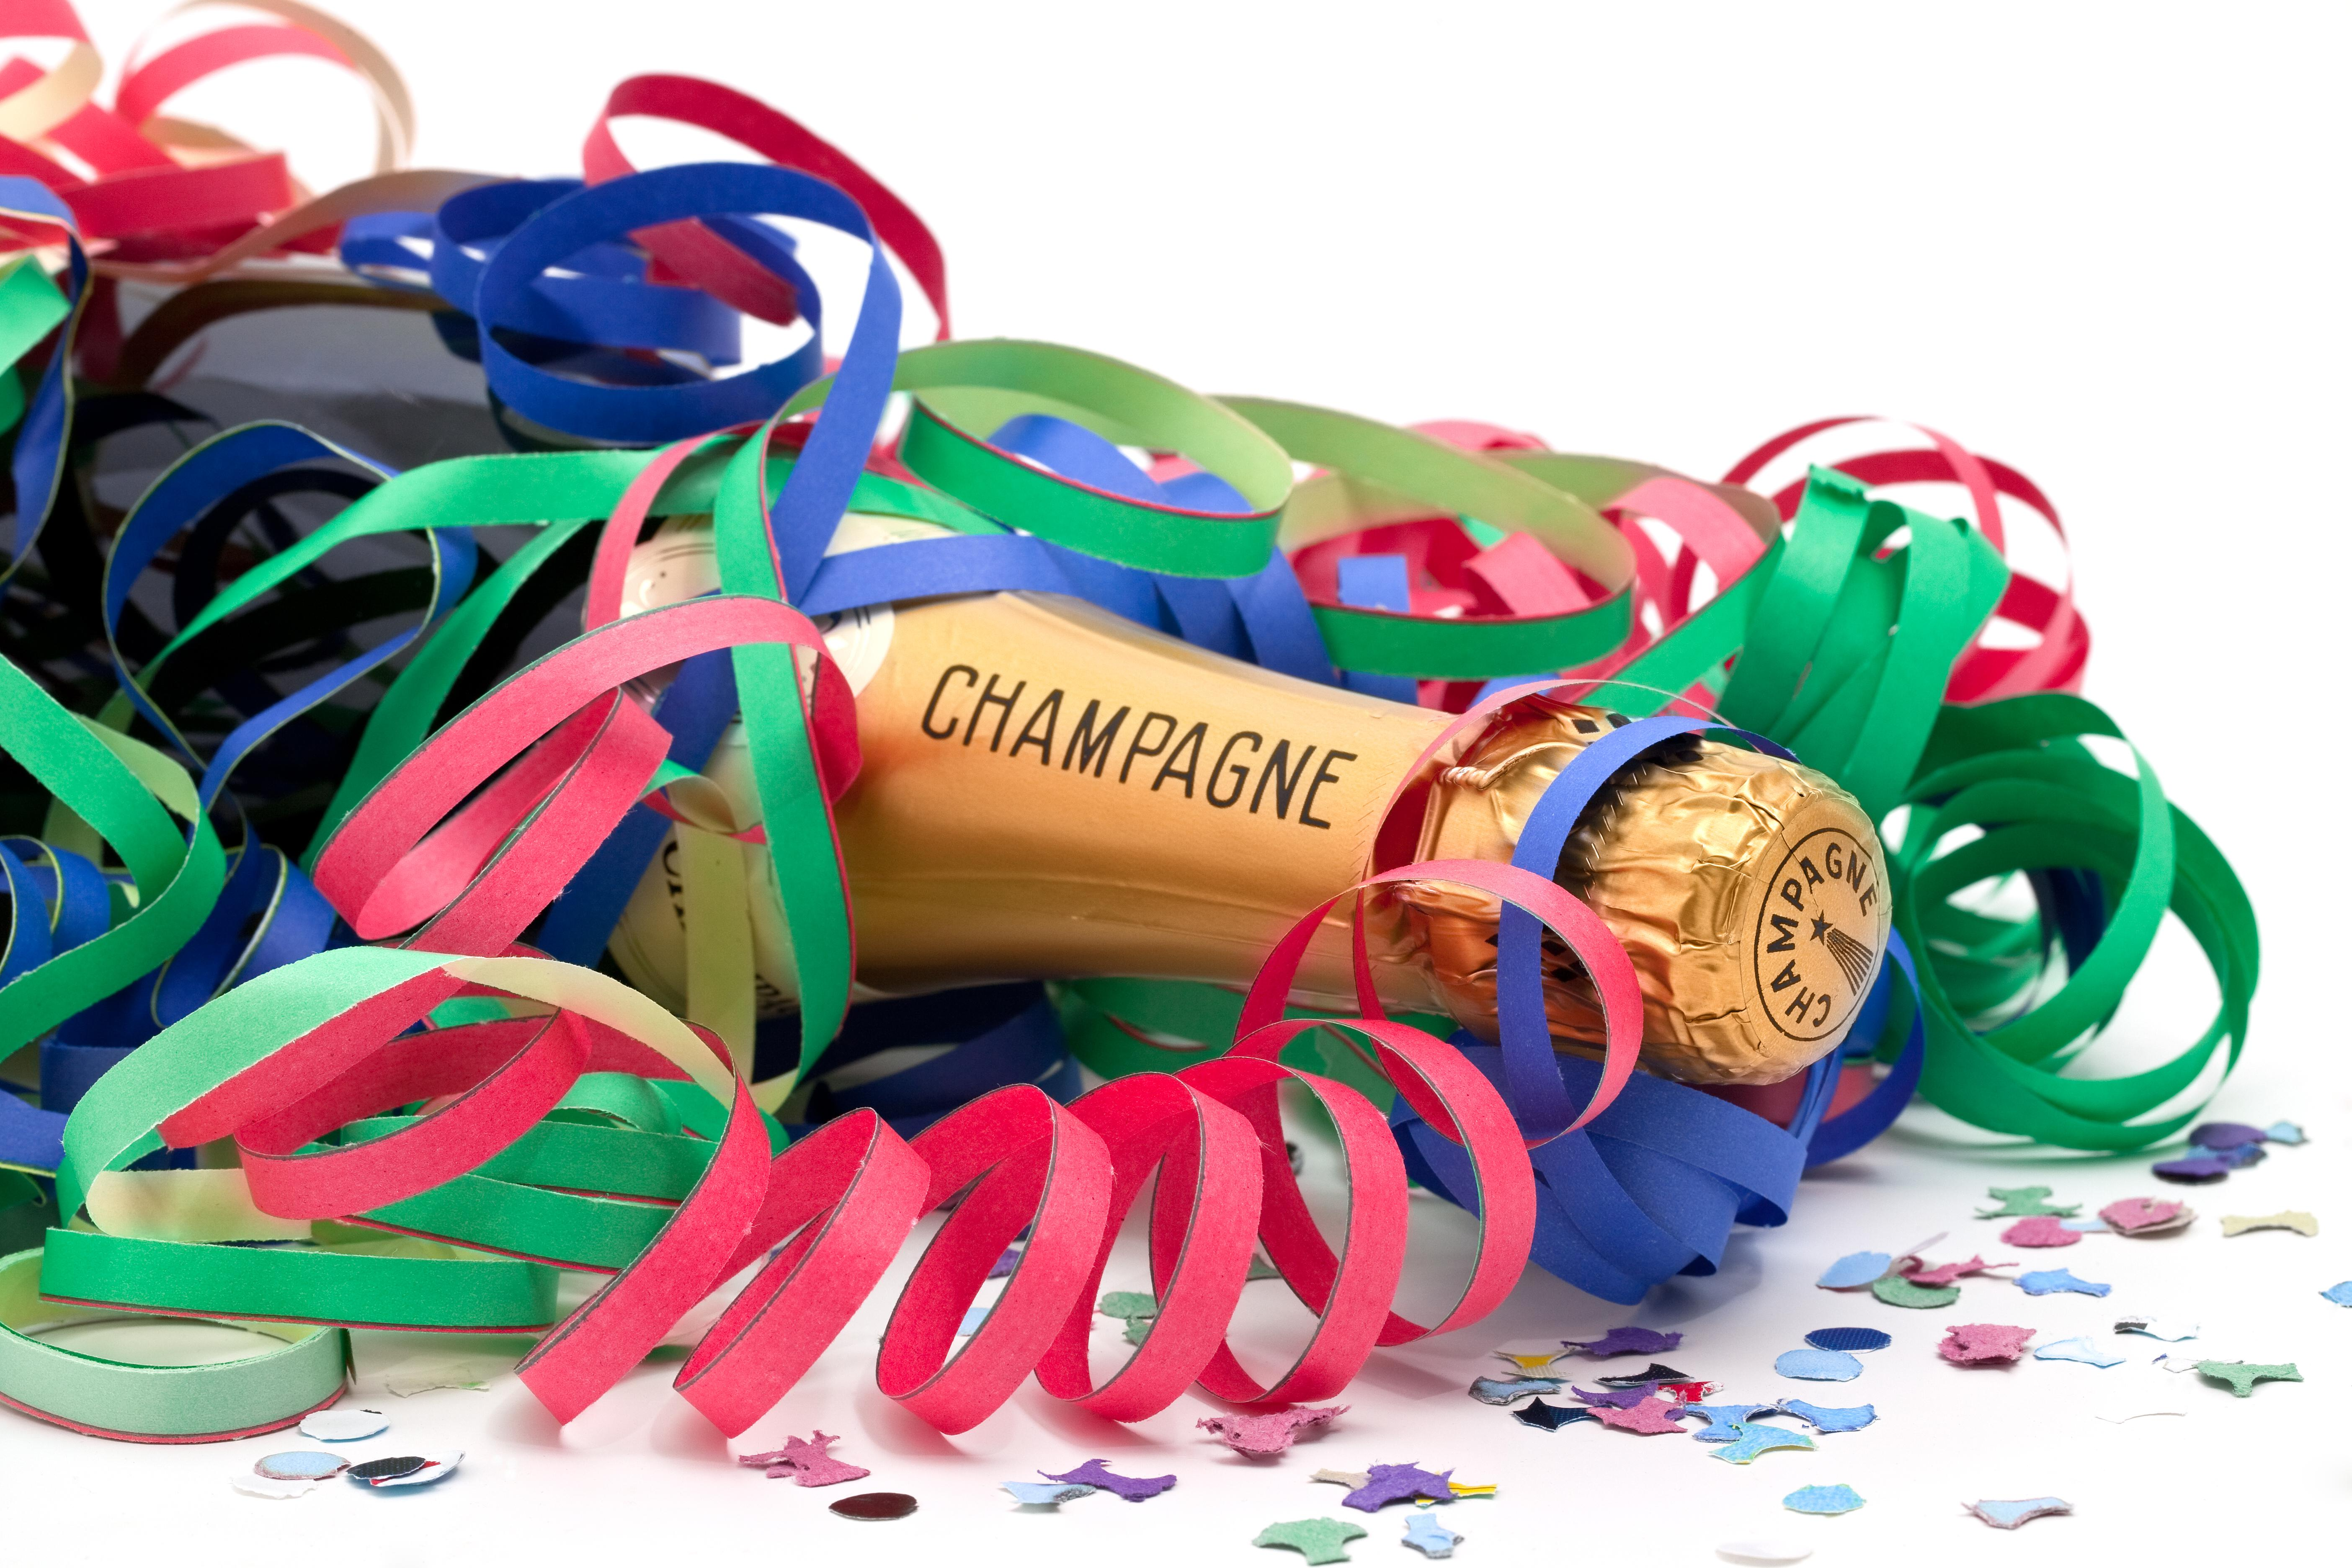 Chamapgne bottle and streamers